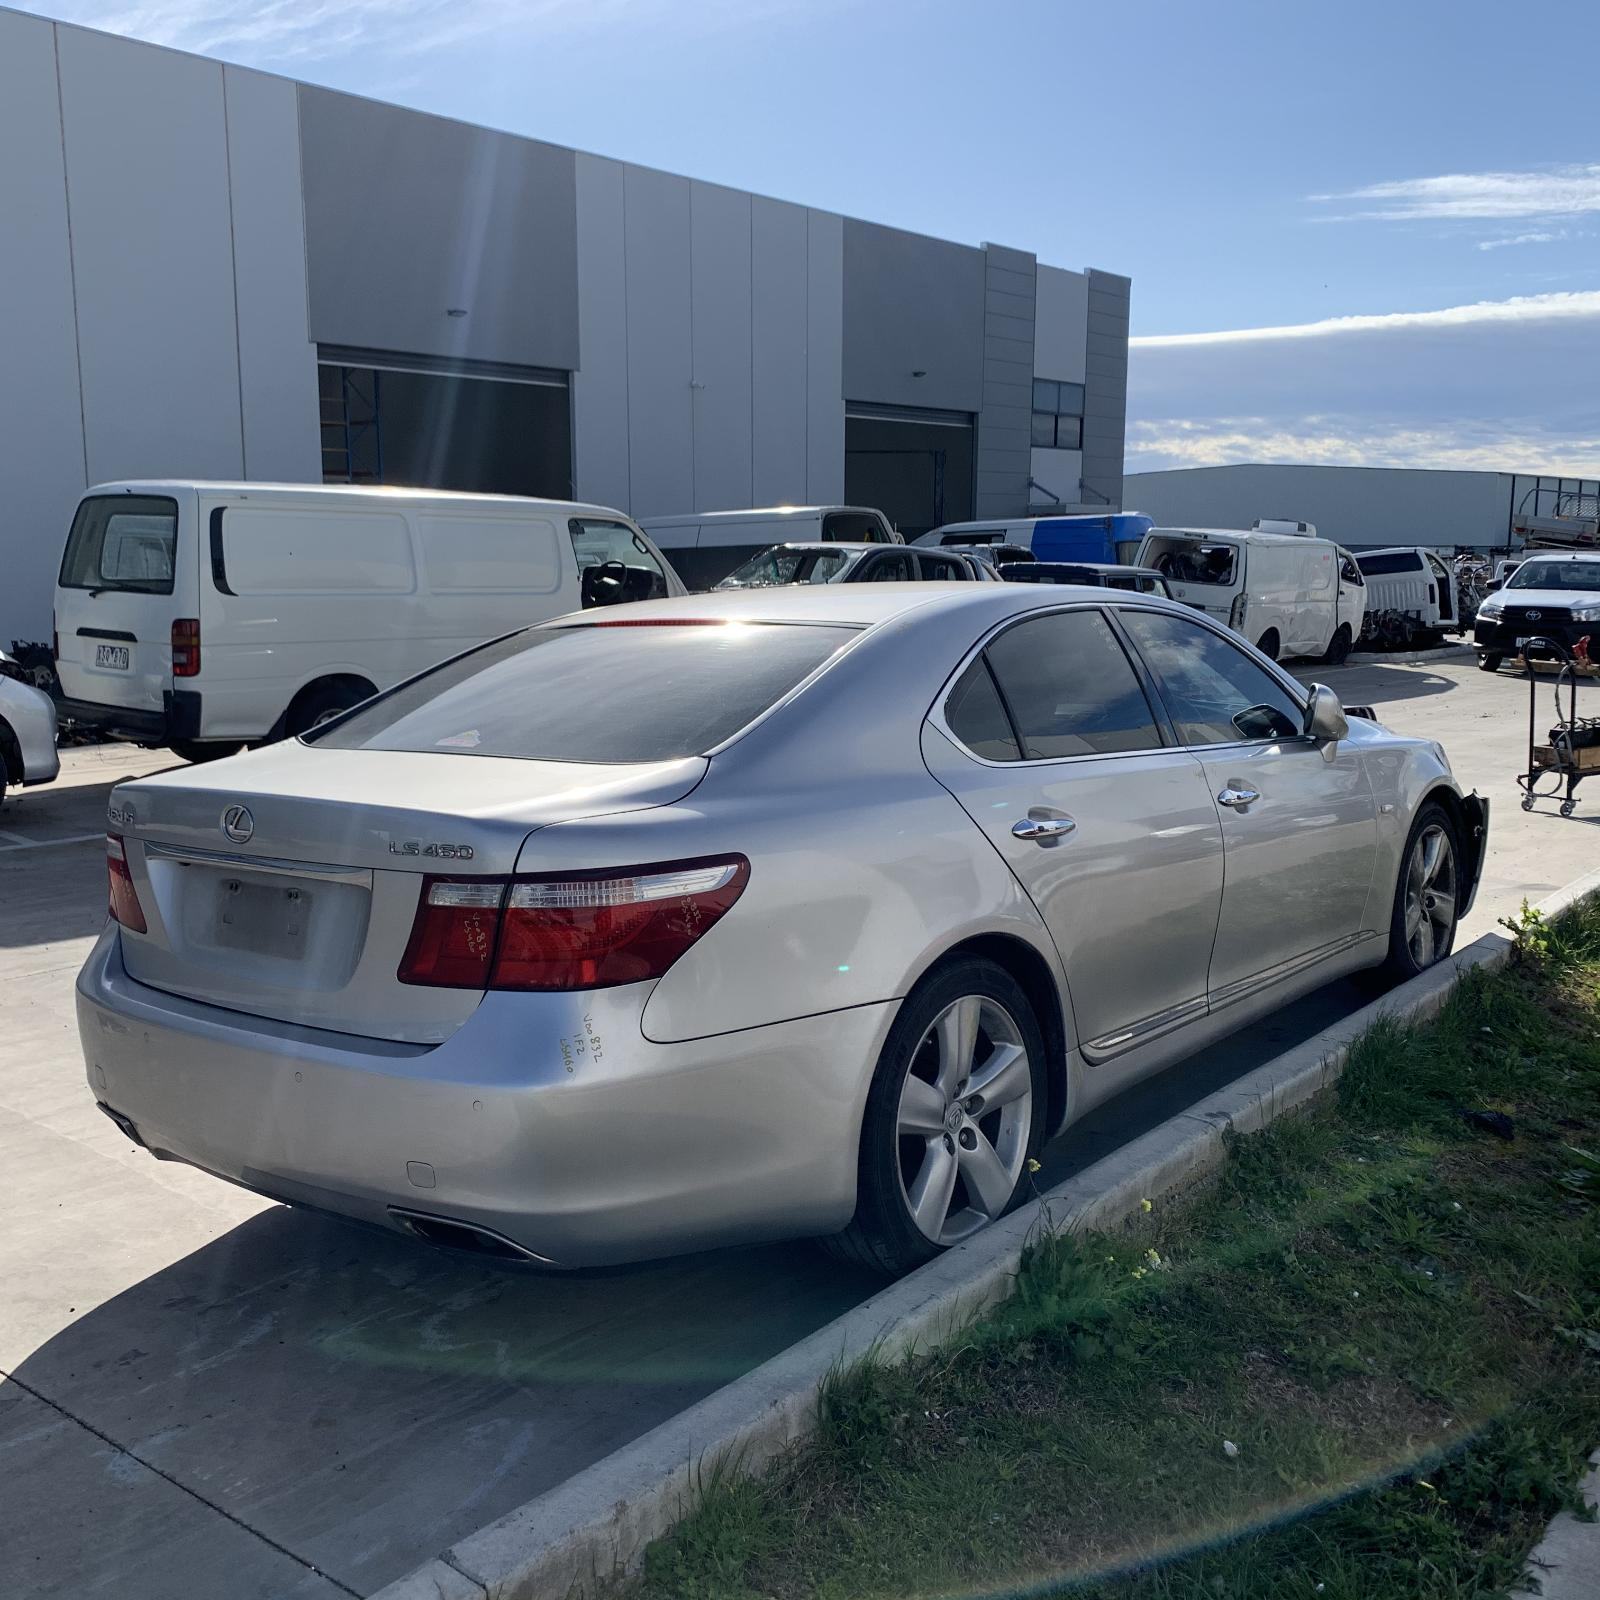 LEXUS LS460 1UR-FSE 4.6L  Engine Automatic RWD Transmission 04/07 - 12/17